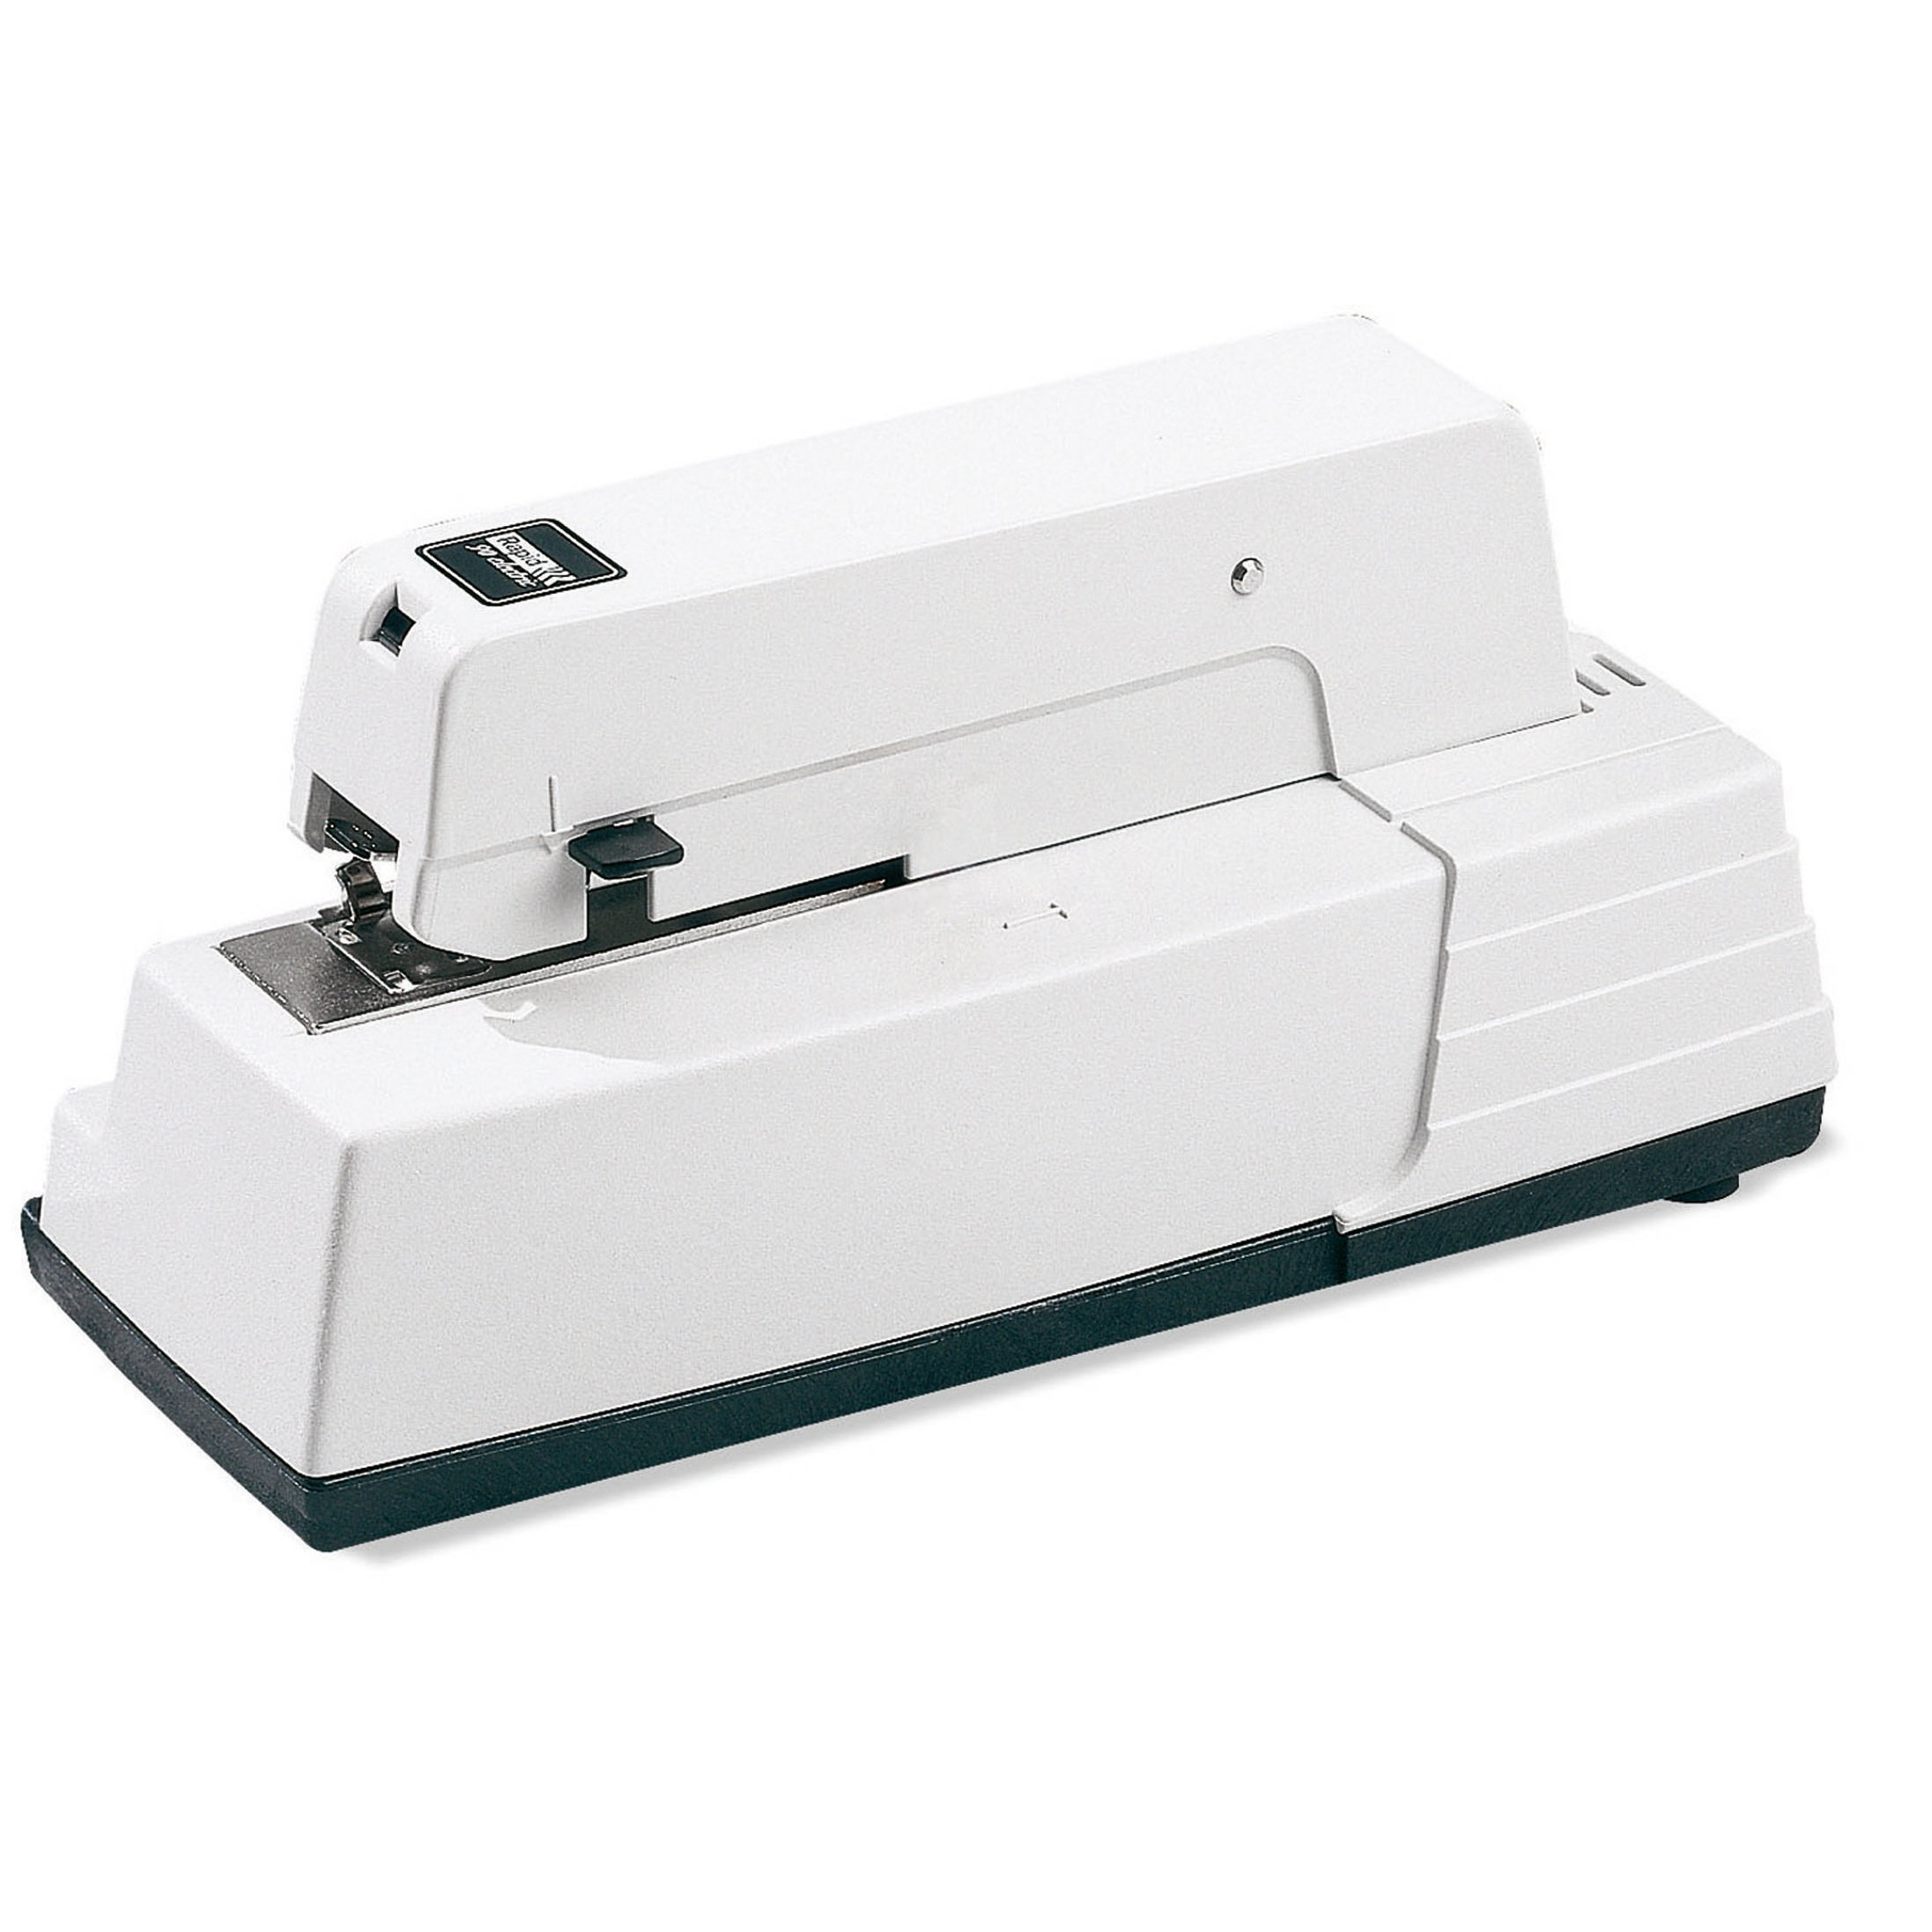 Isaberg - Rapid Rapid 90EC Electric Desktop Stapler